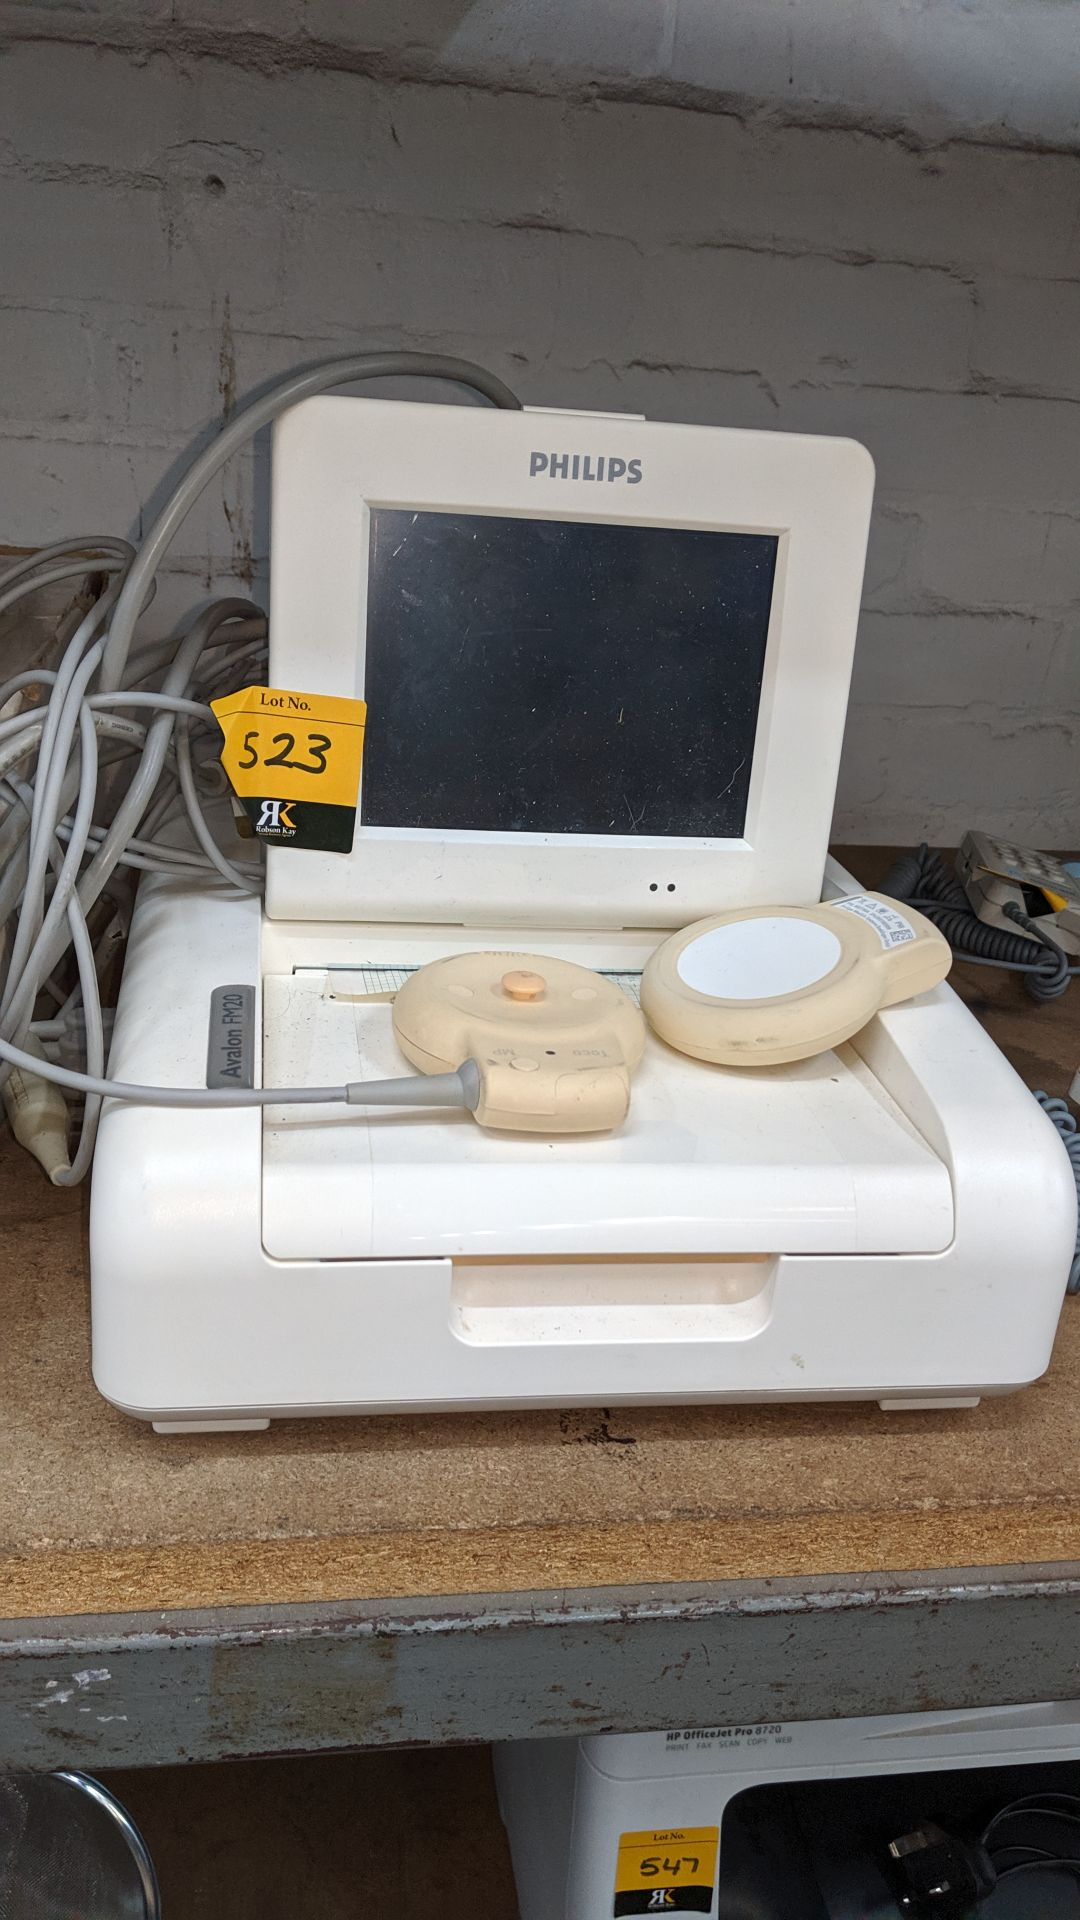 Lot 523 - Philips Avalon model FM20 foetal monitor. This is one of a large number of lots used/owned by One To